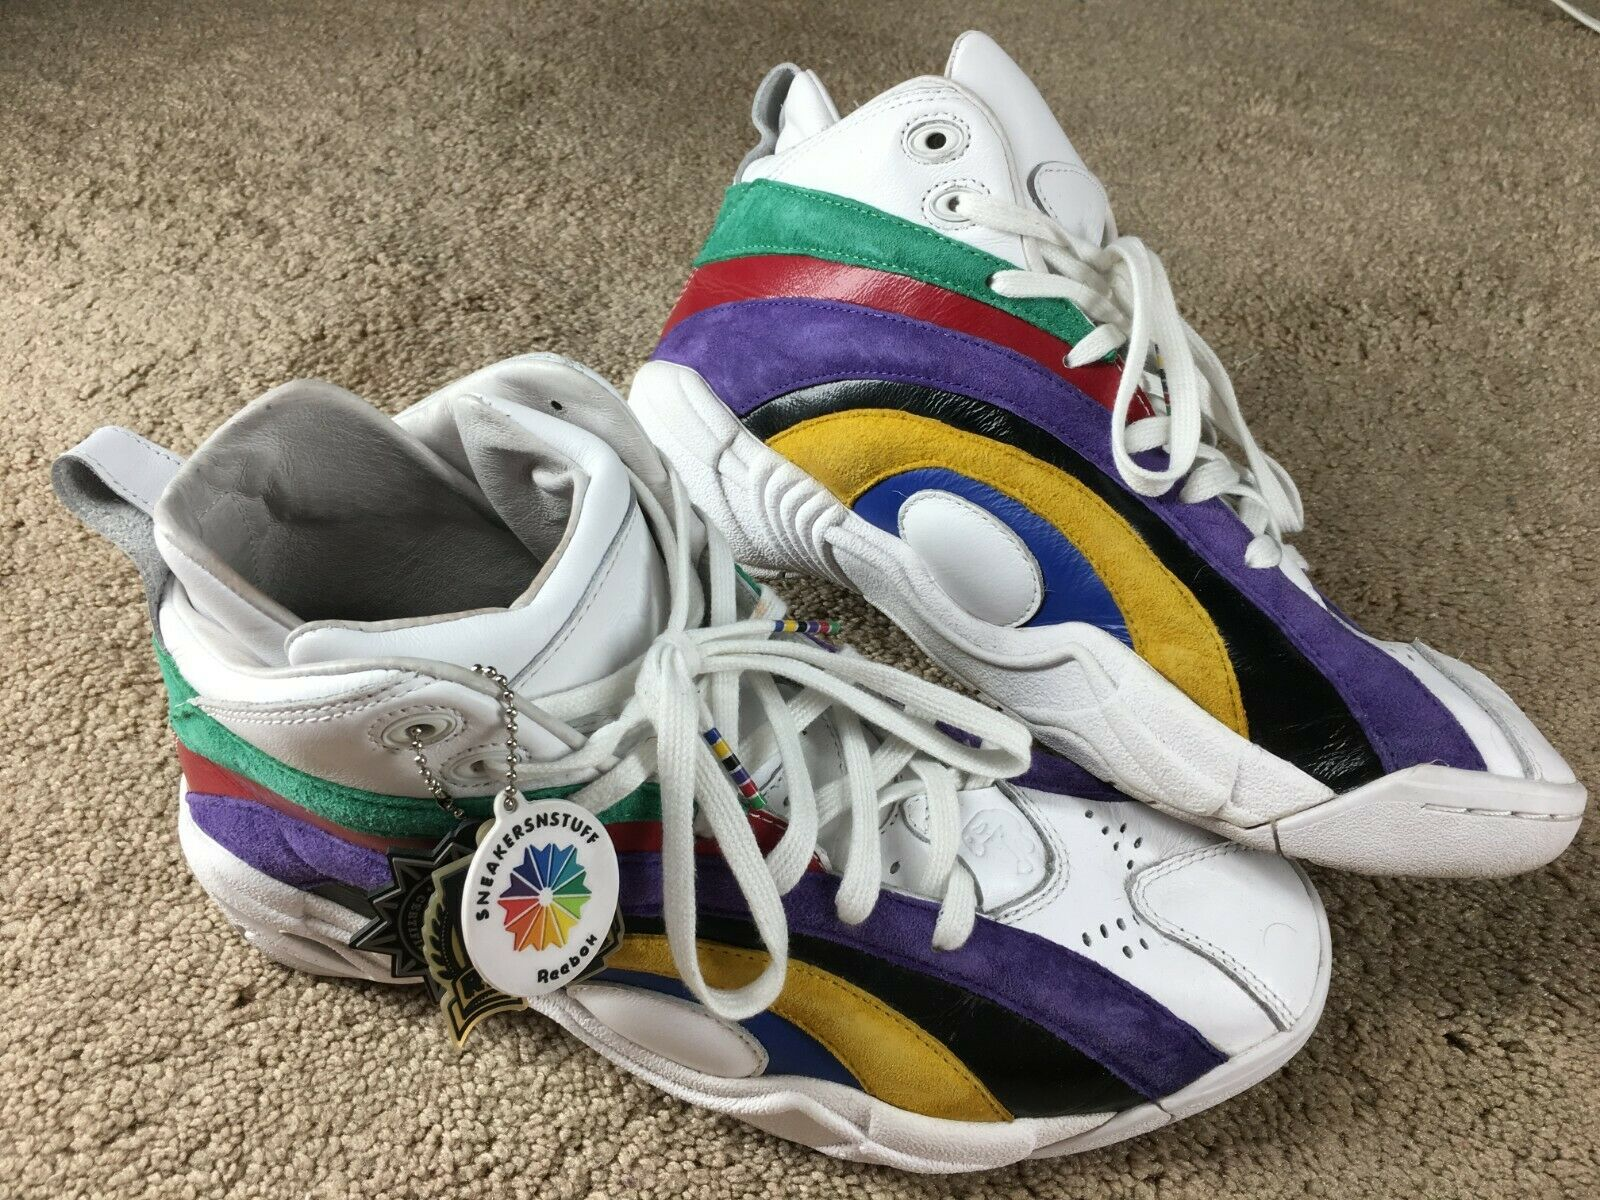 76a71d9a6aac9b Sneakersnstuff Reebok Shaqnosis 10 Leather Shaq SNS Rainbow Basketball shoes  OG zyjkea5229-Athletic Shoes